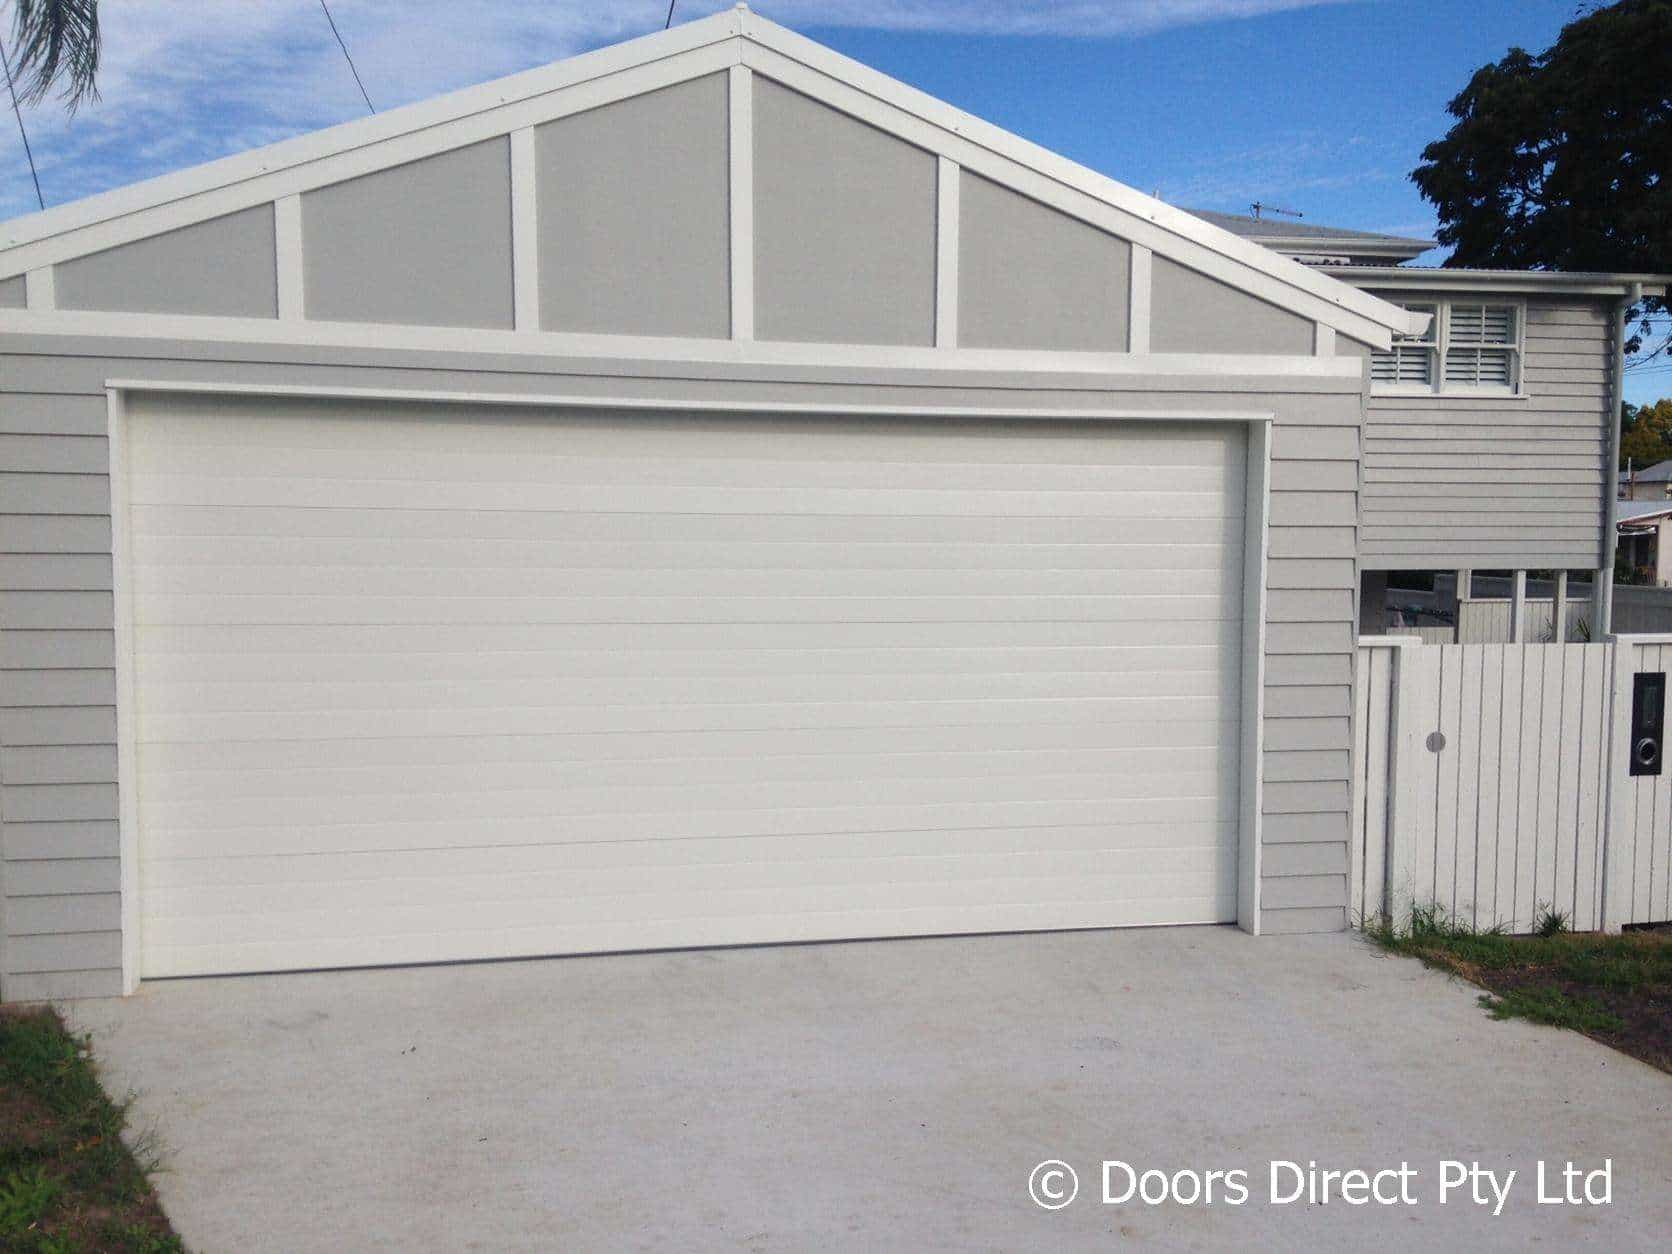 Panel Lift Amp Sectional Garage Doors Brisbane Doors Direct